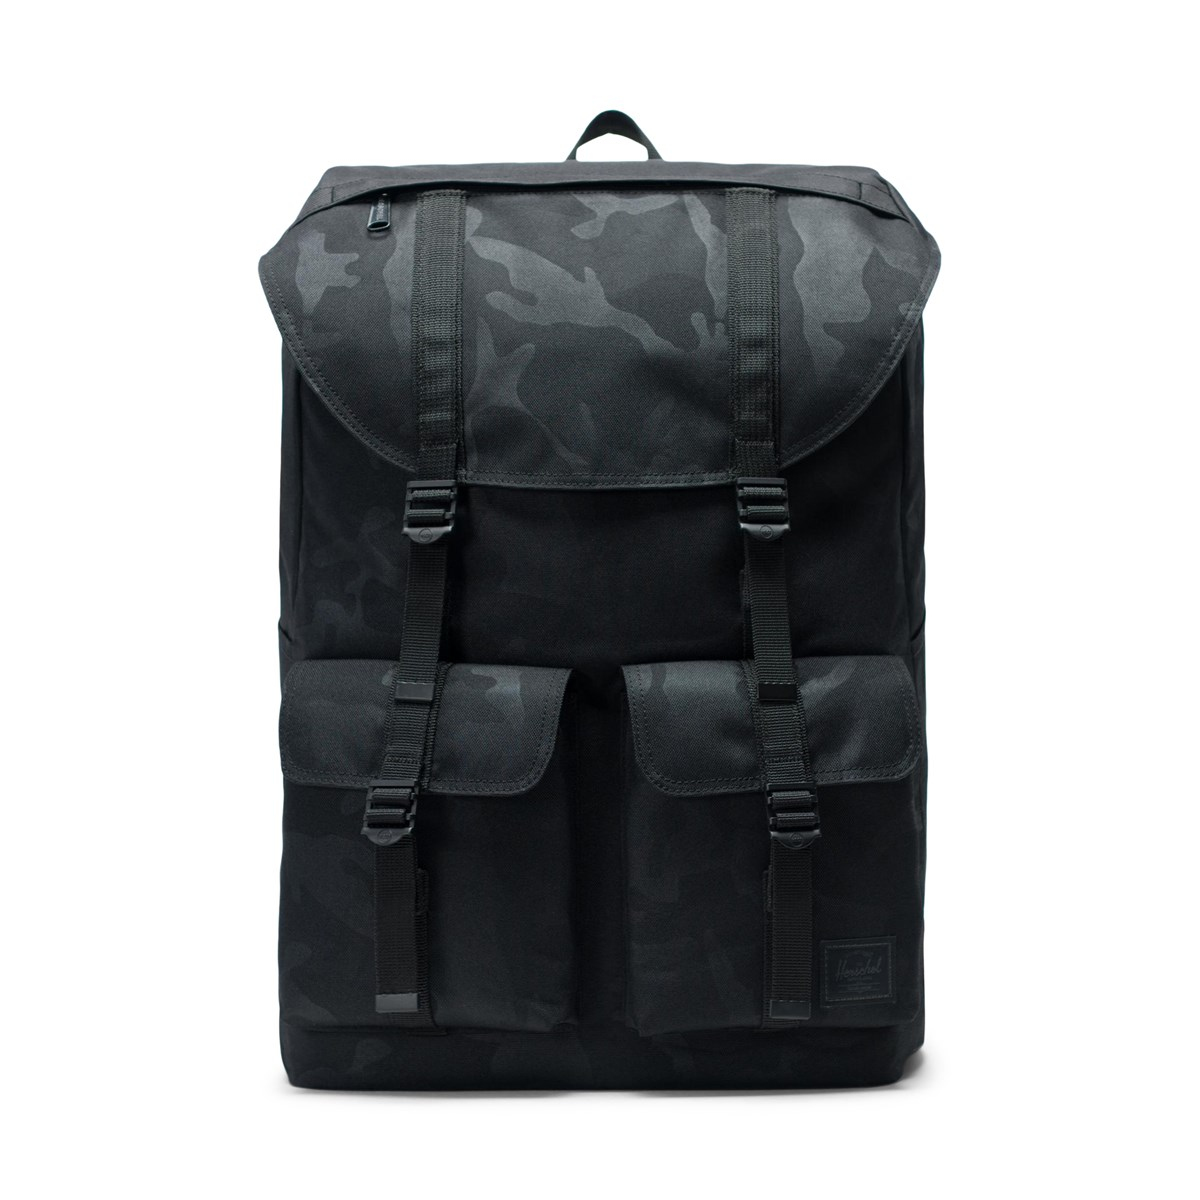 Buckingham Backpack in Black Camo